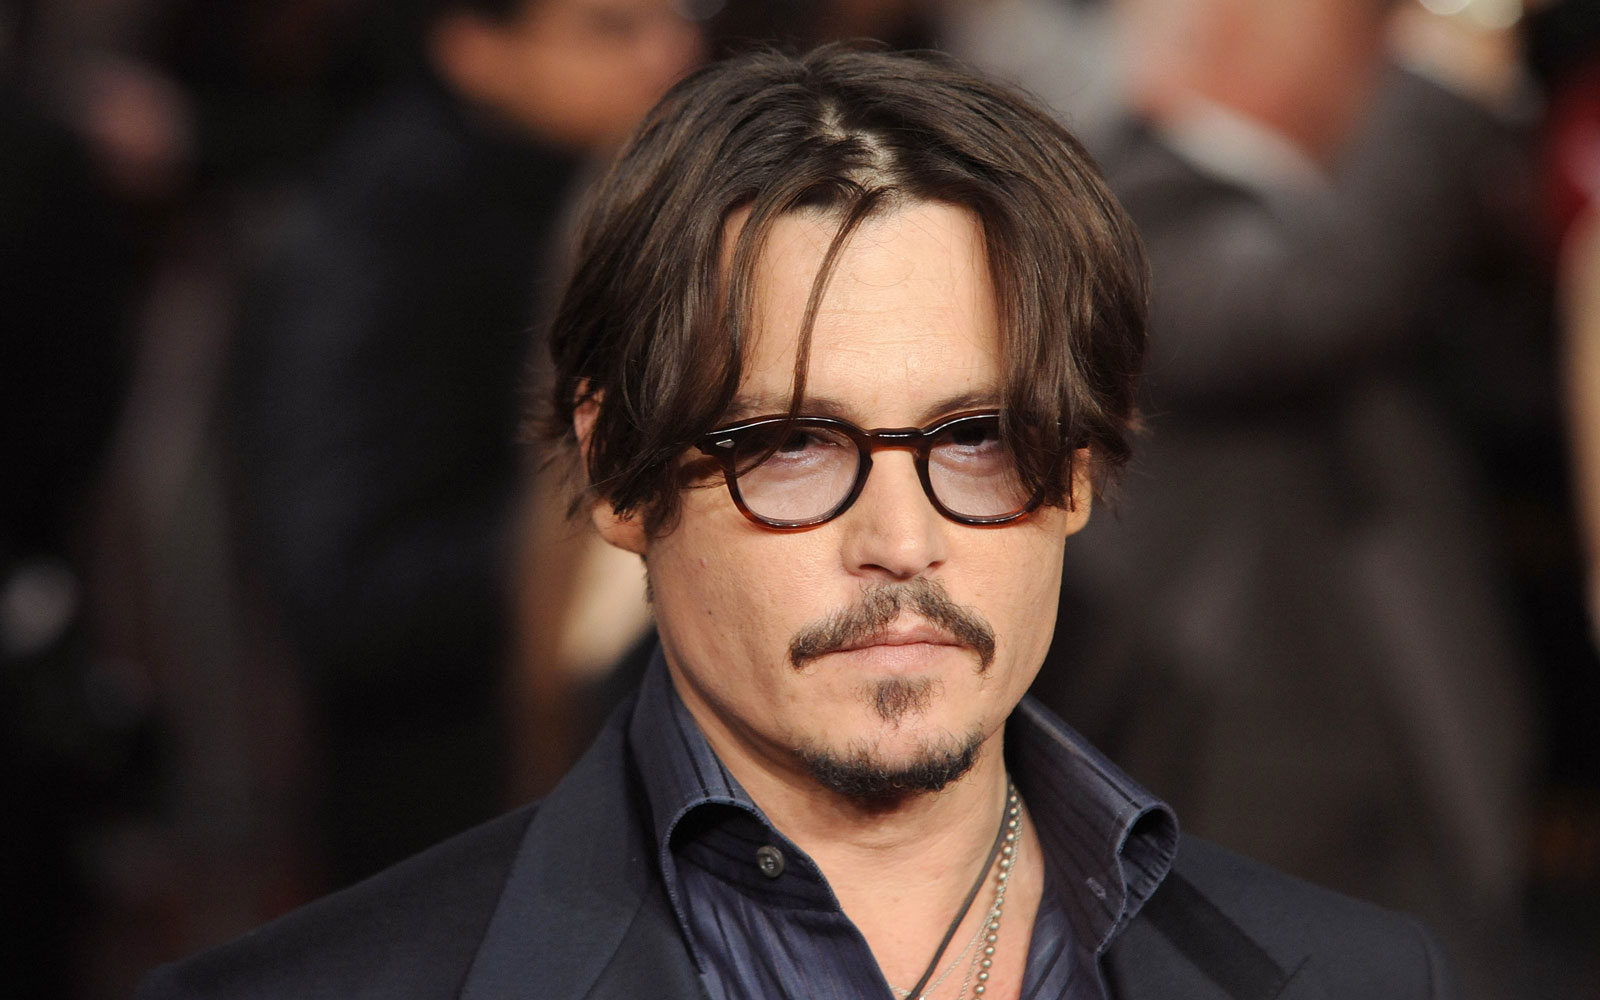 Johnny Depp, American actor, may be ending his acting career in the near future.